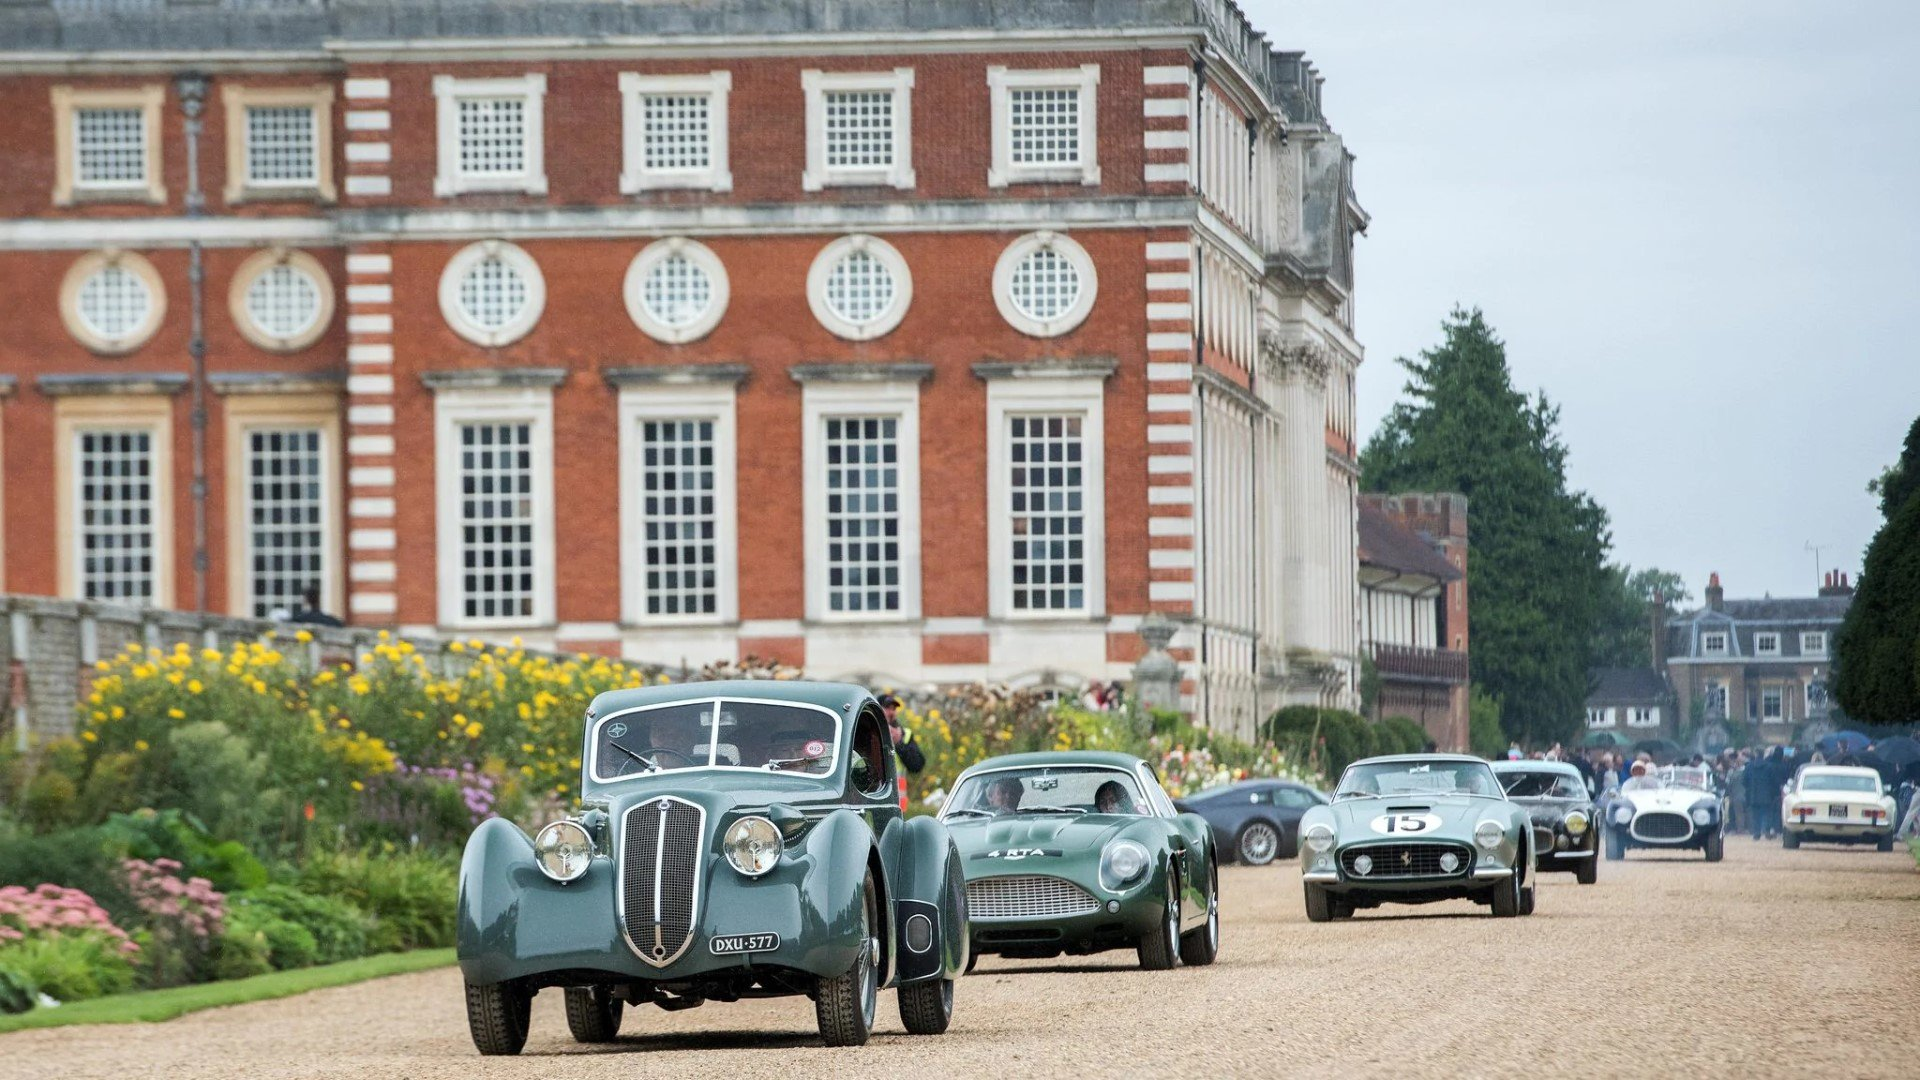 Concours of Elegance 2019 at Hampton Court Palace